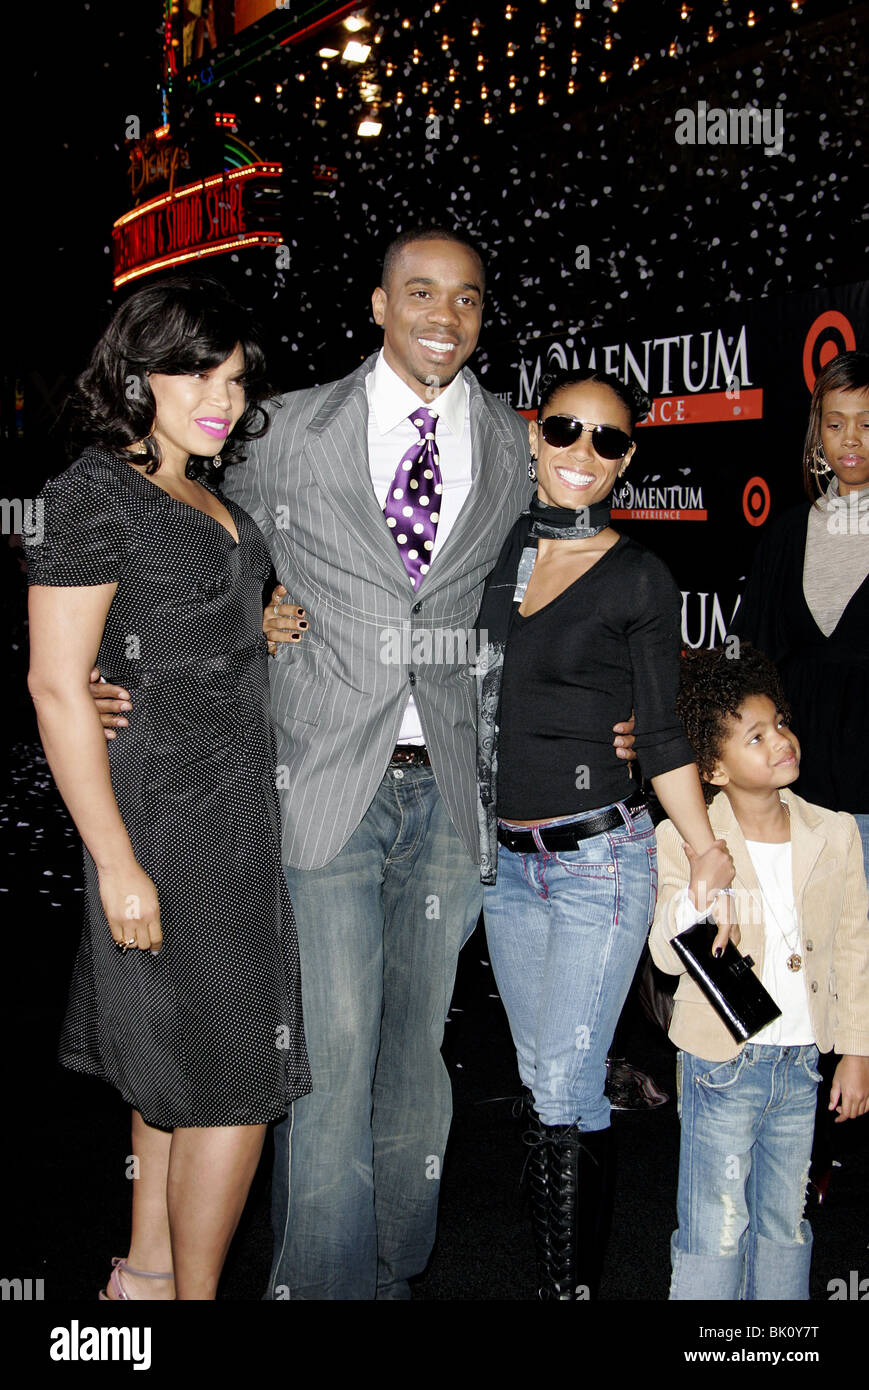 TISHA CAMPBELL DUANE MARTIN JADA PINKETT-SMITH & WILLOW SMITH THE SEAT FILLER PREMIERE HOLLYWOOD LOS ANGELES - Stock Image